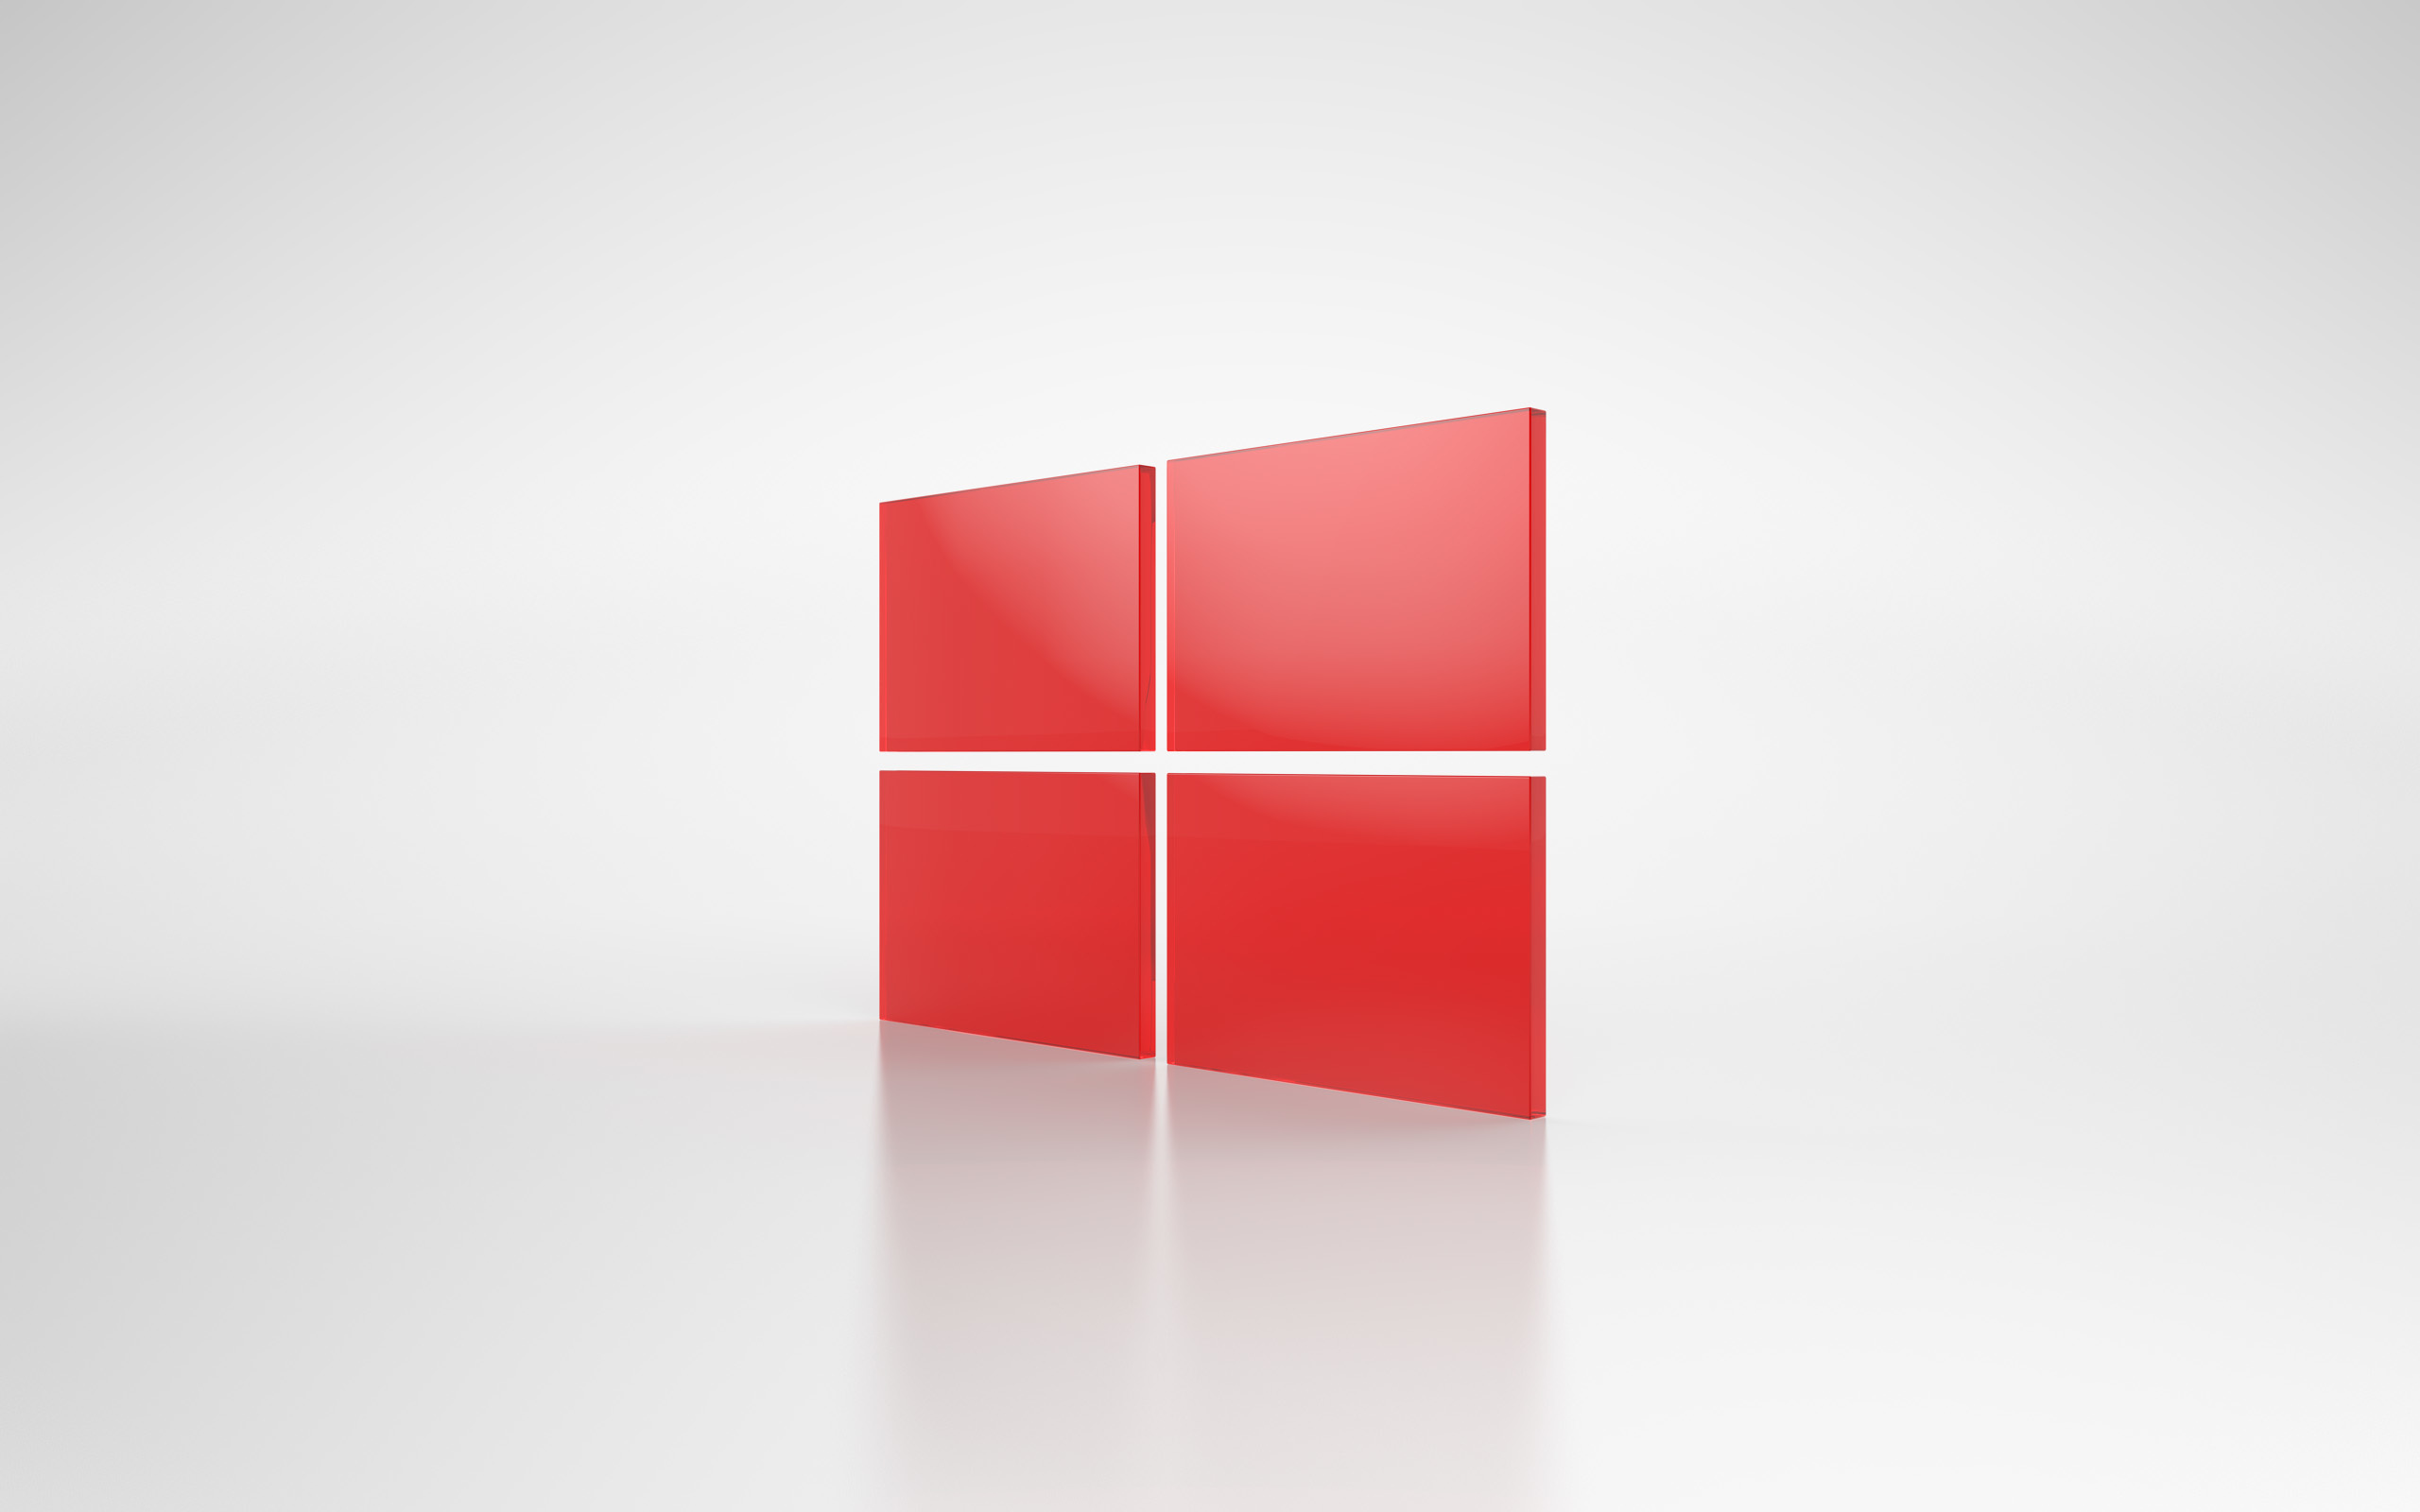 Windows, HD Computer, 4k Wallpapers, Images, Backgrounds